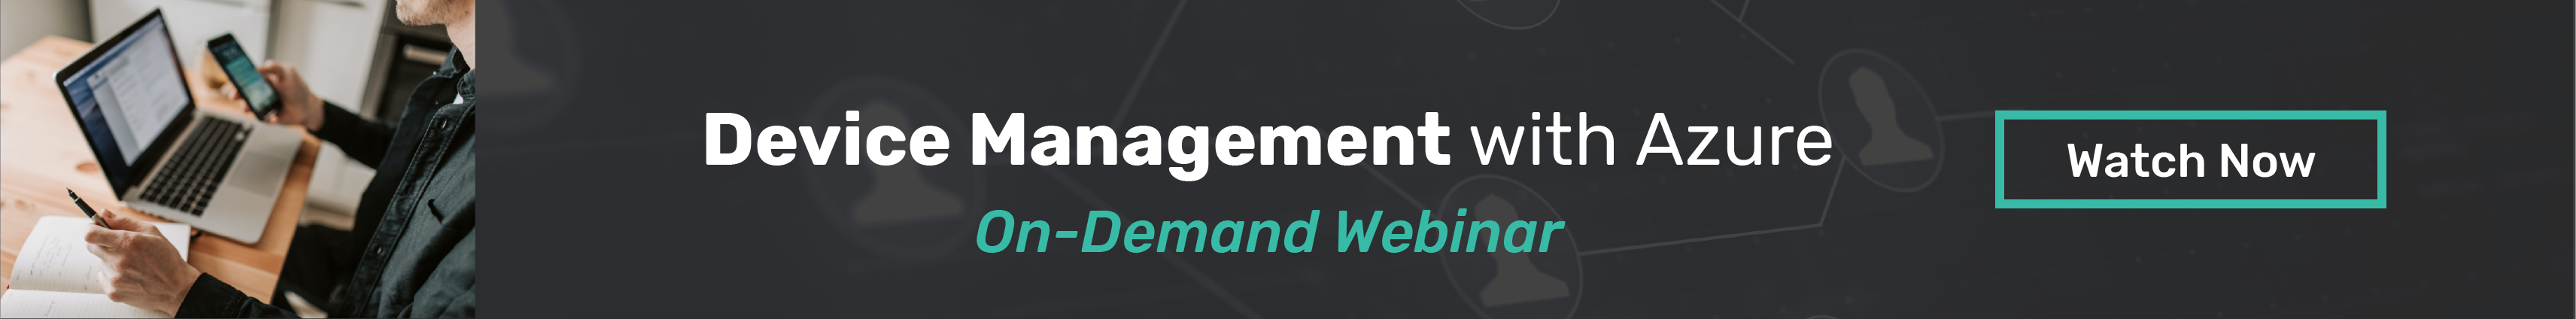 Device Management with Azure